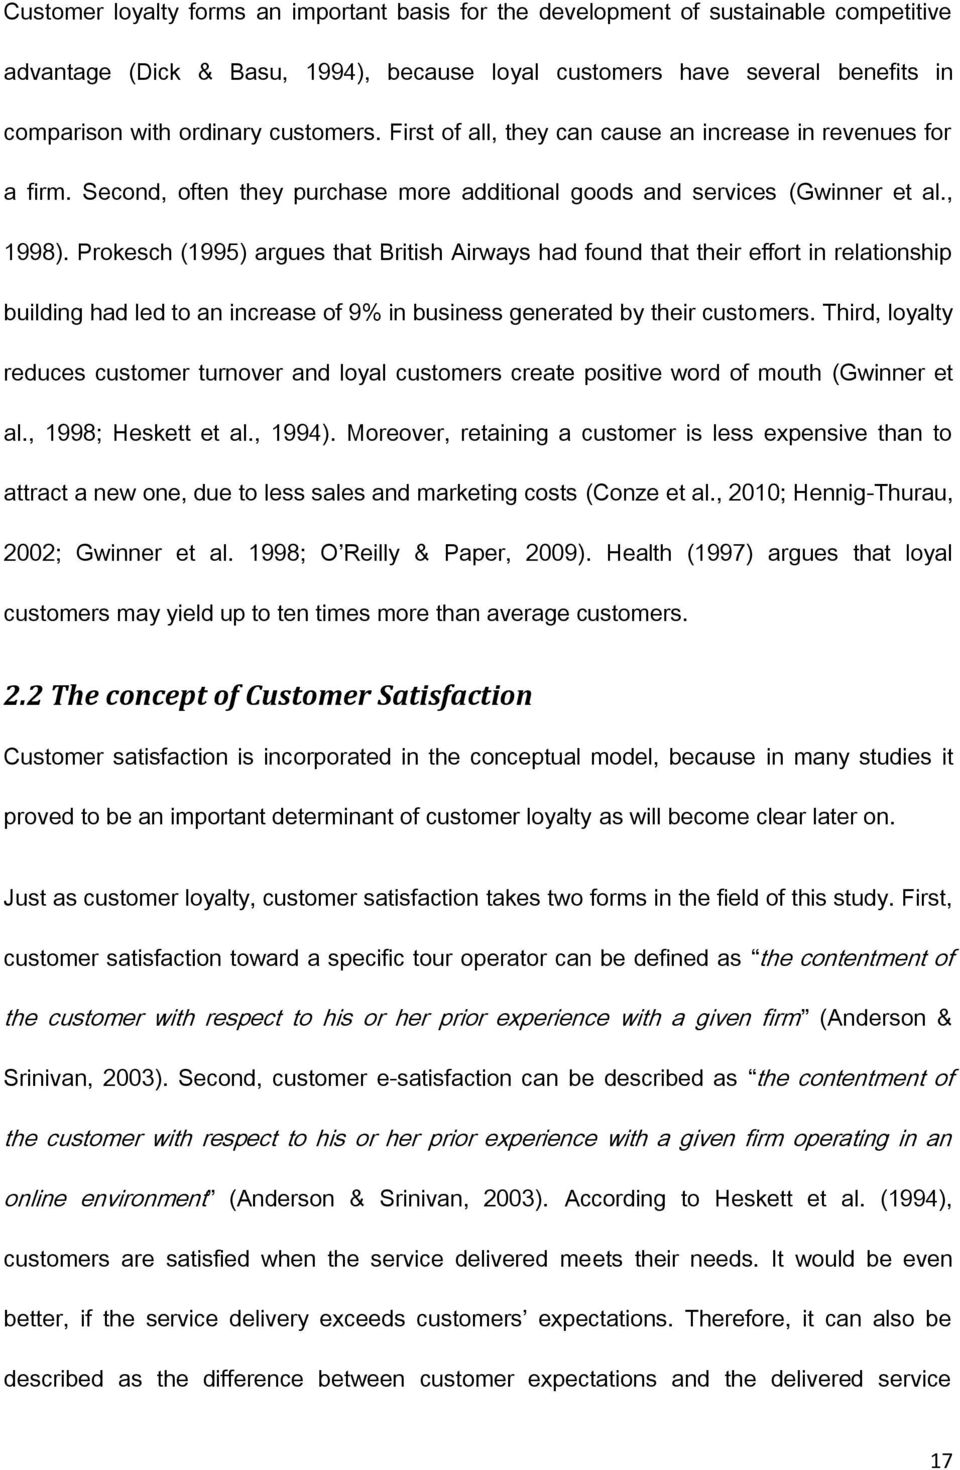 Prokesch (1995) argues that British Airways had found that their effort in relationship building had led to an increase of 9% in business generated by their customers.